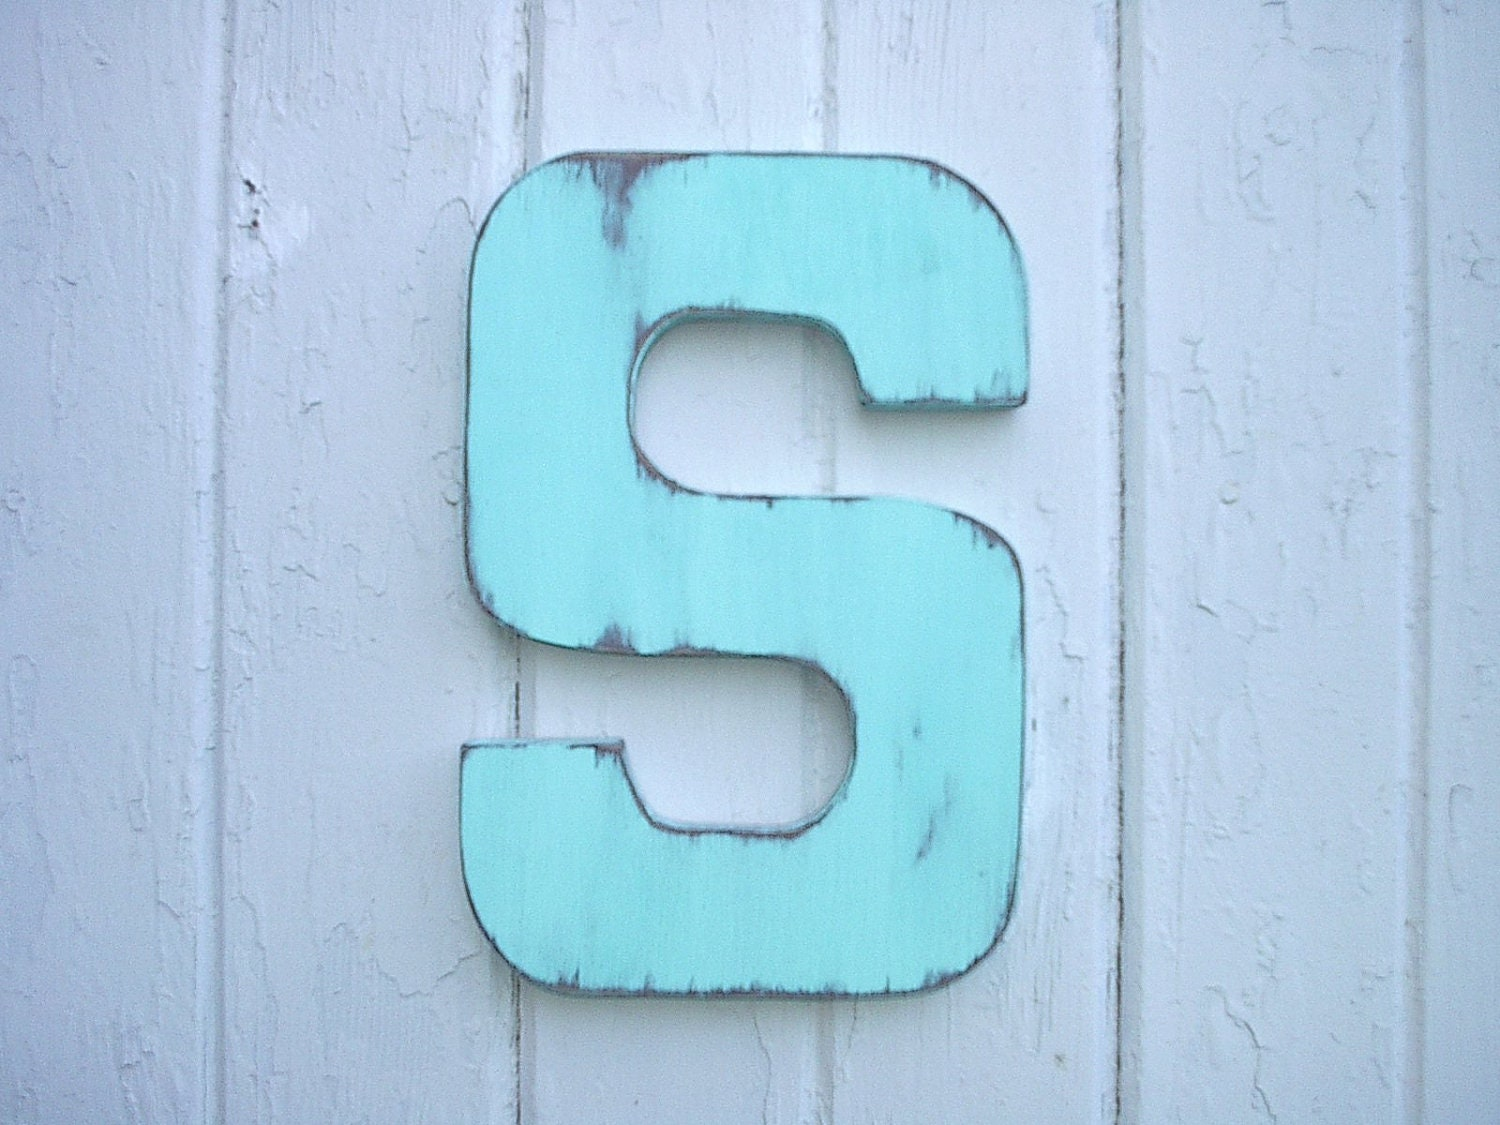 Shabby chic rustic wooden letter s wall art cabin cottage zoom amipublicfo Image collections